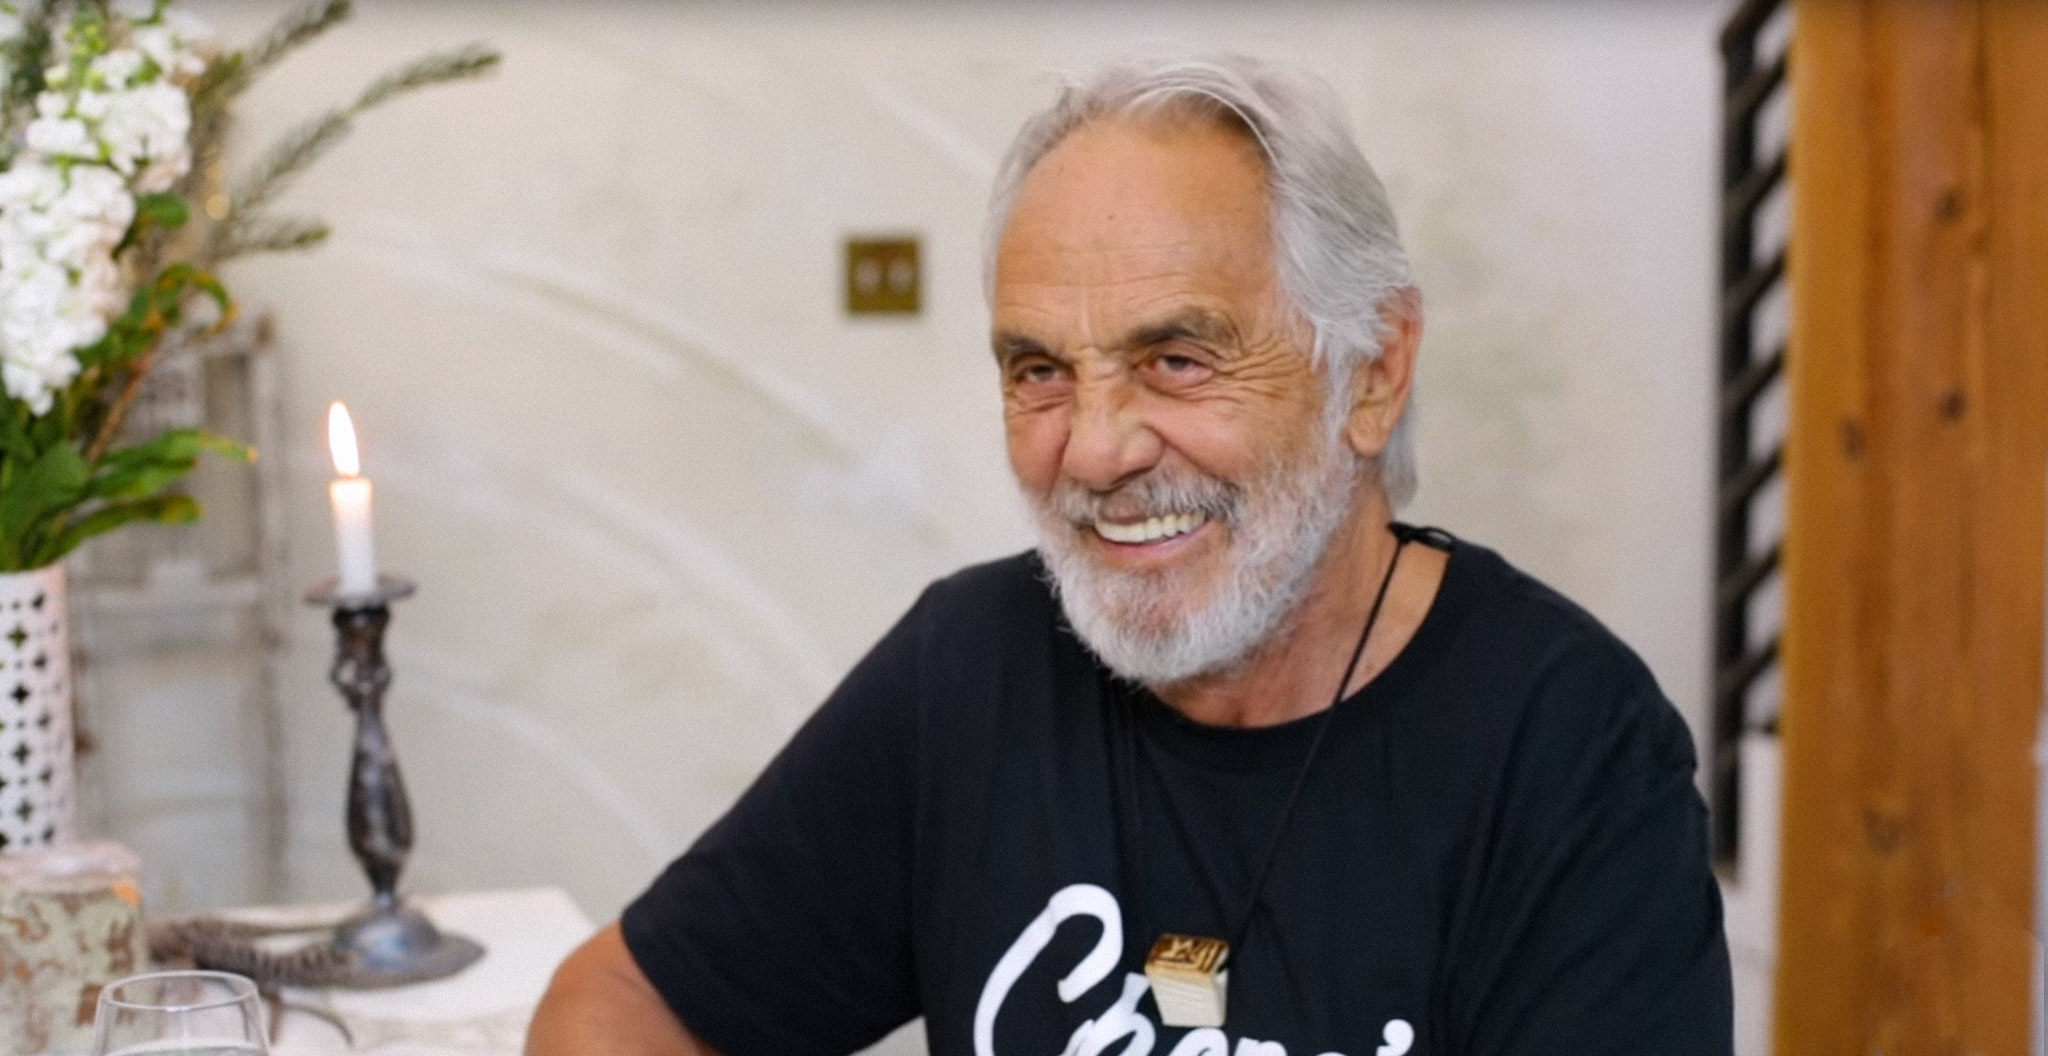 Tommy Chong Believes Weed Will Make Donald Trump Less Insane